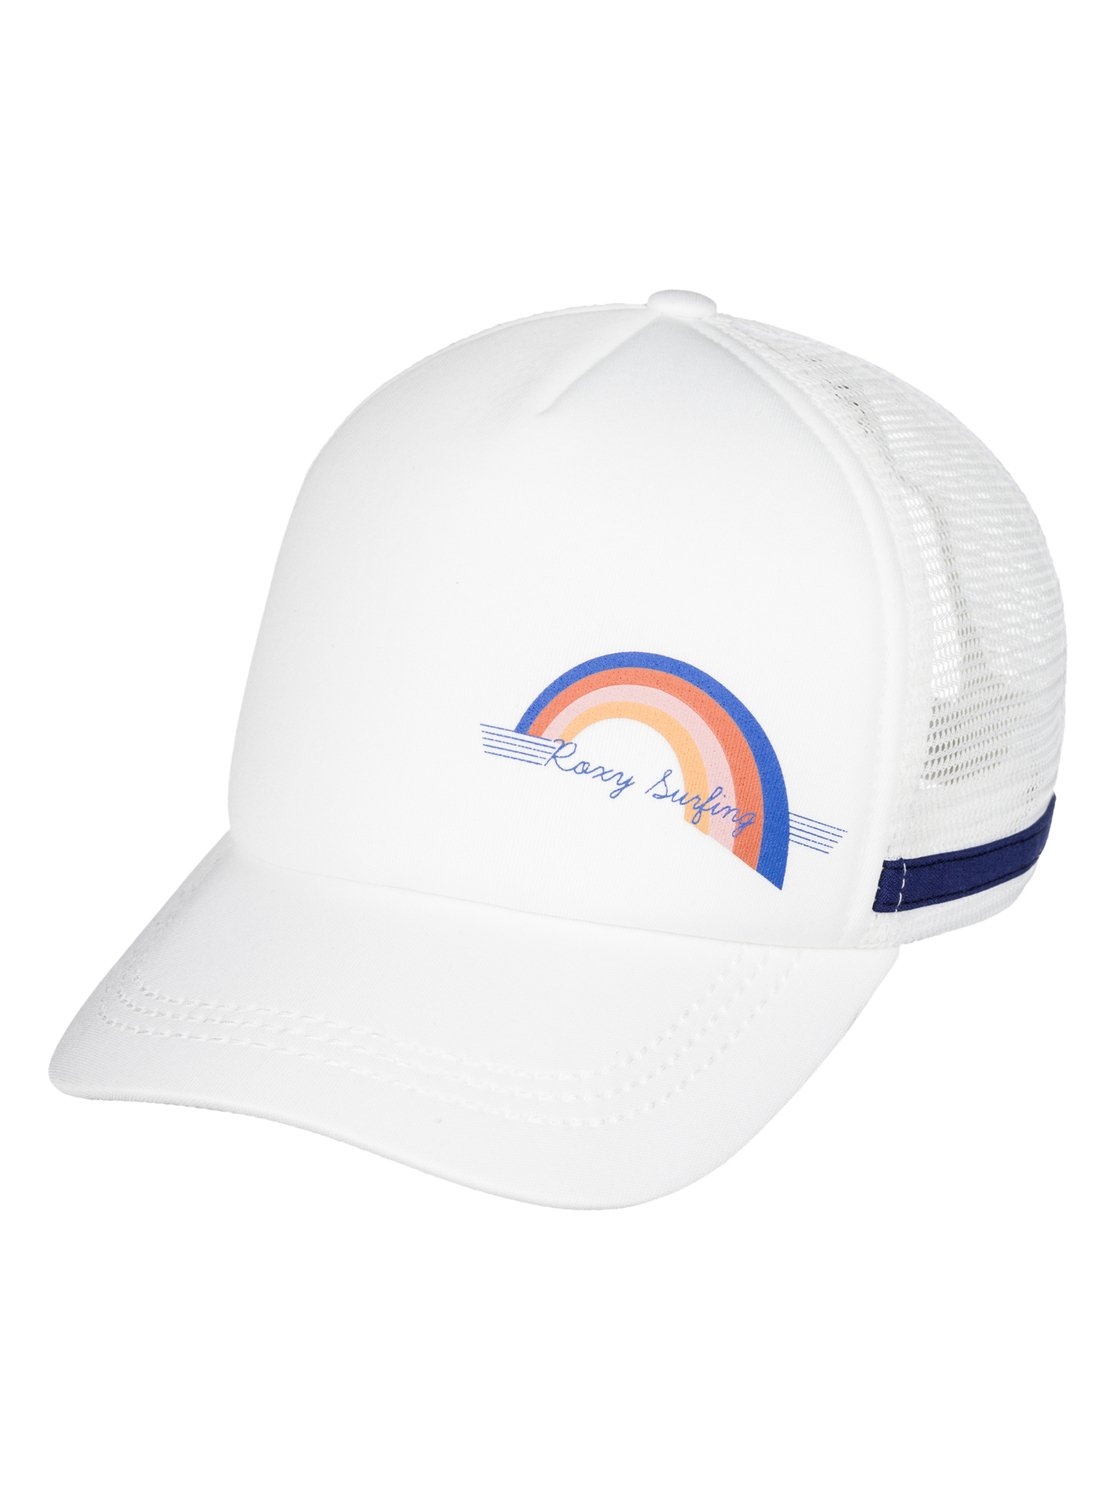 Dig This - Gorra Tipo Trucker para Mujer Roxy